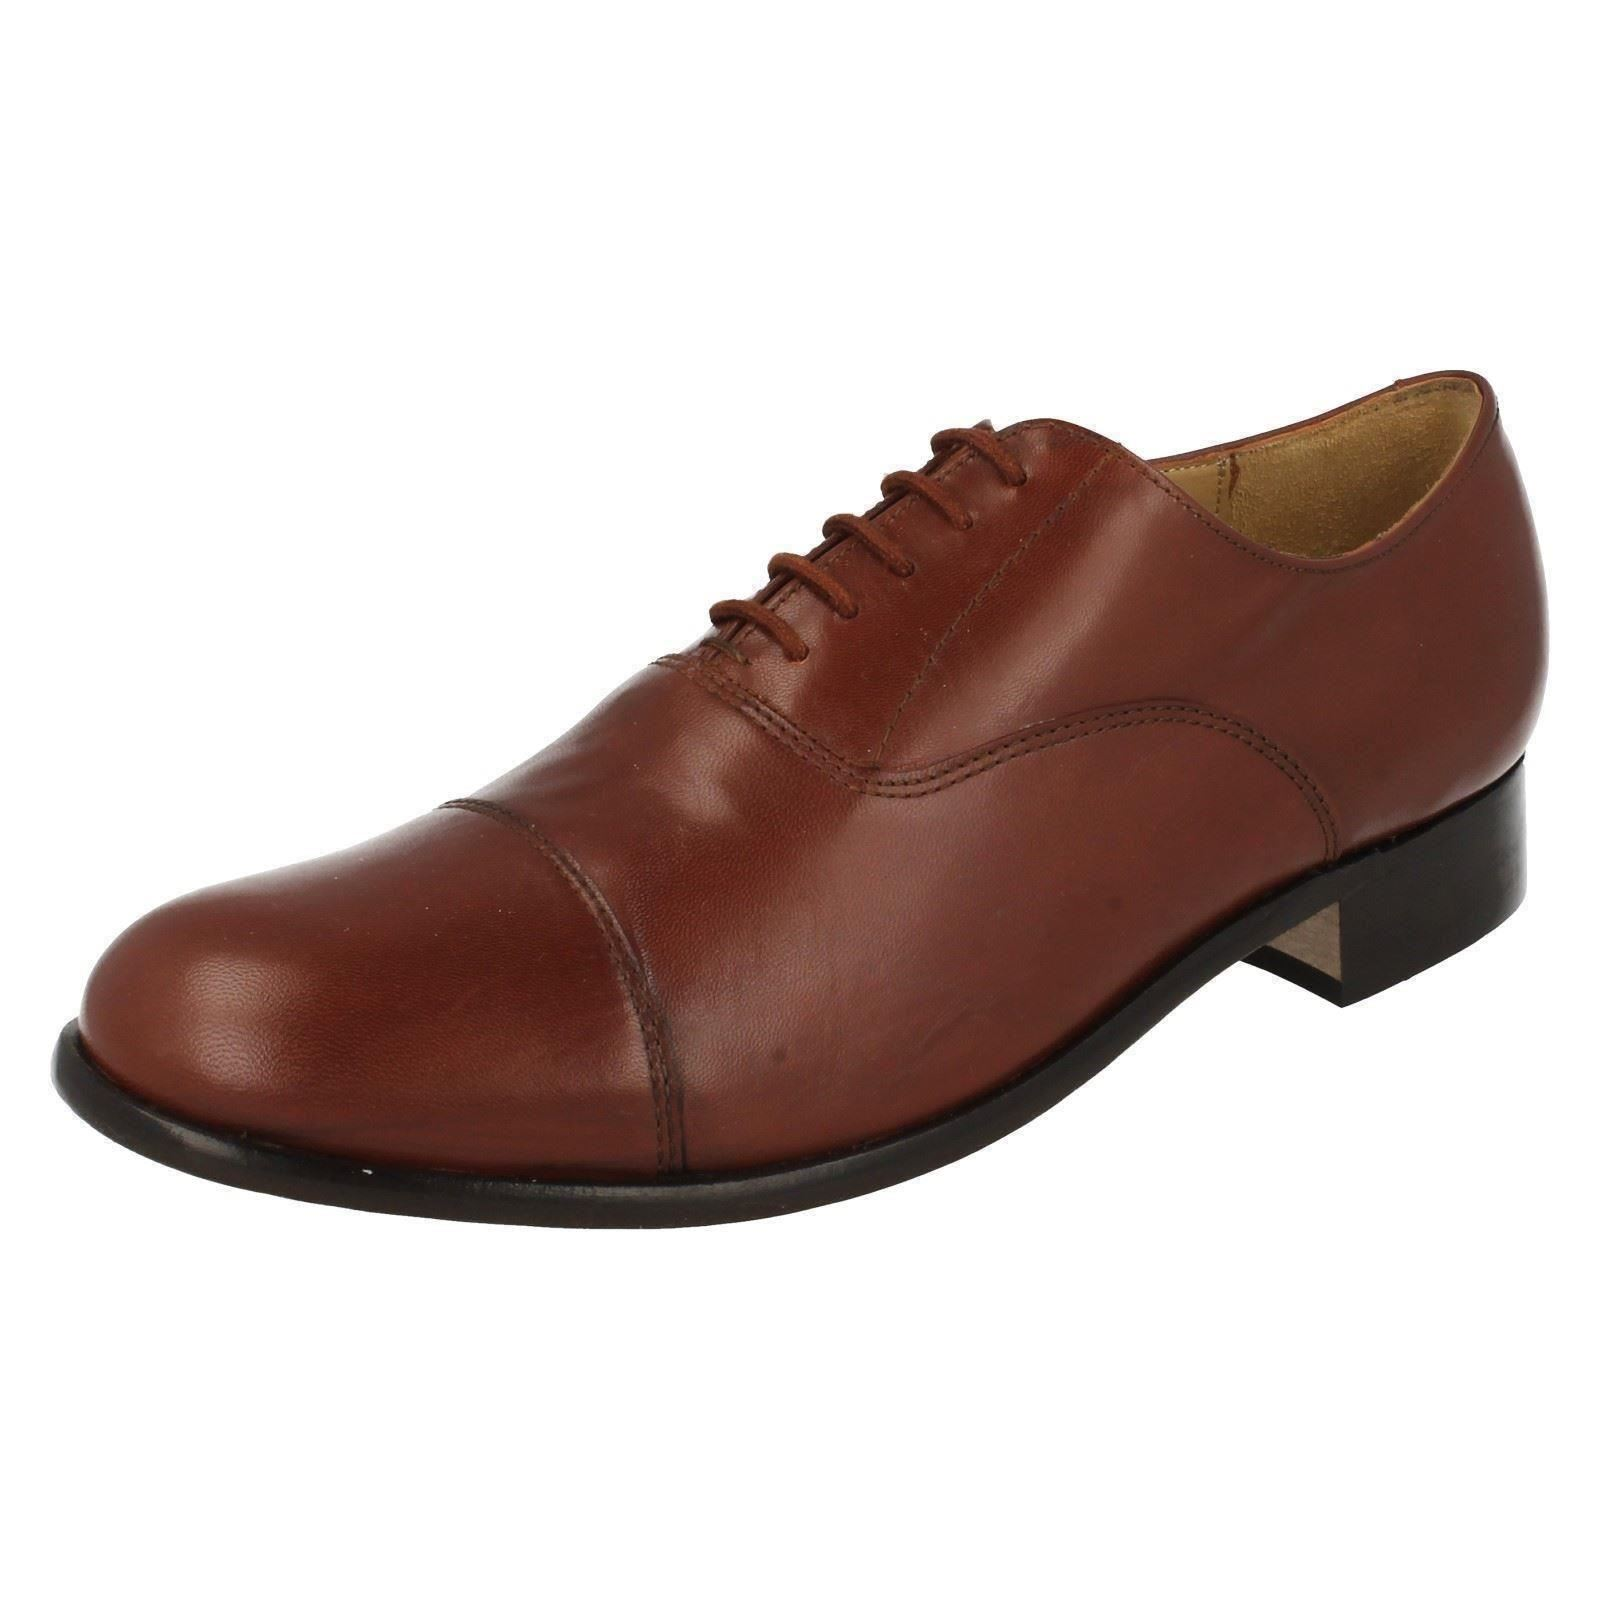 Mens Thomas Blunt Smart Formal Oxford Shoes K 'Paddington' The Style ~ K Shoes 0f447a